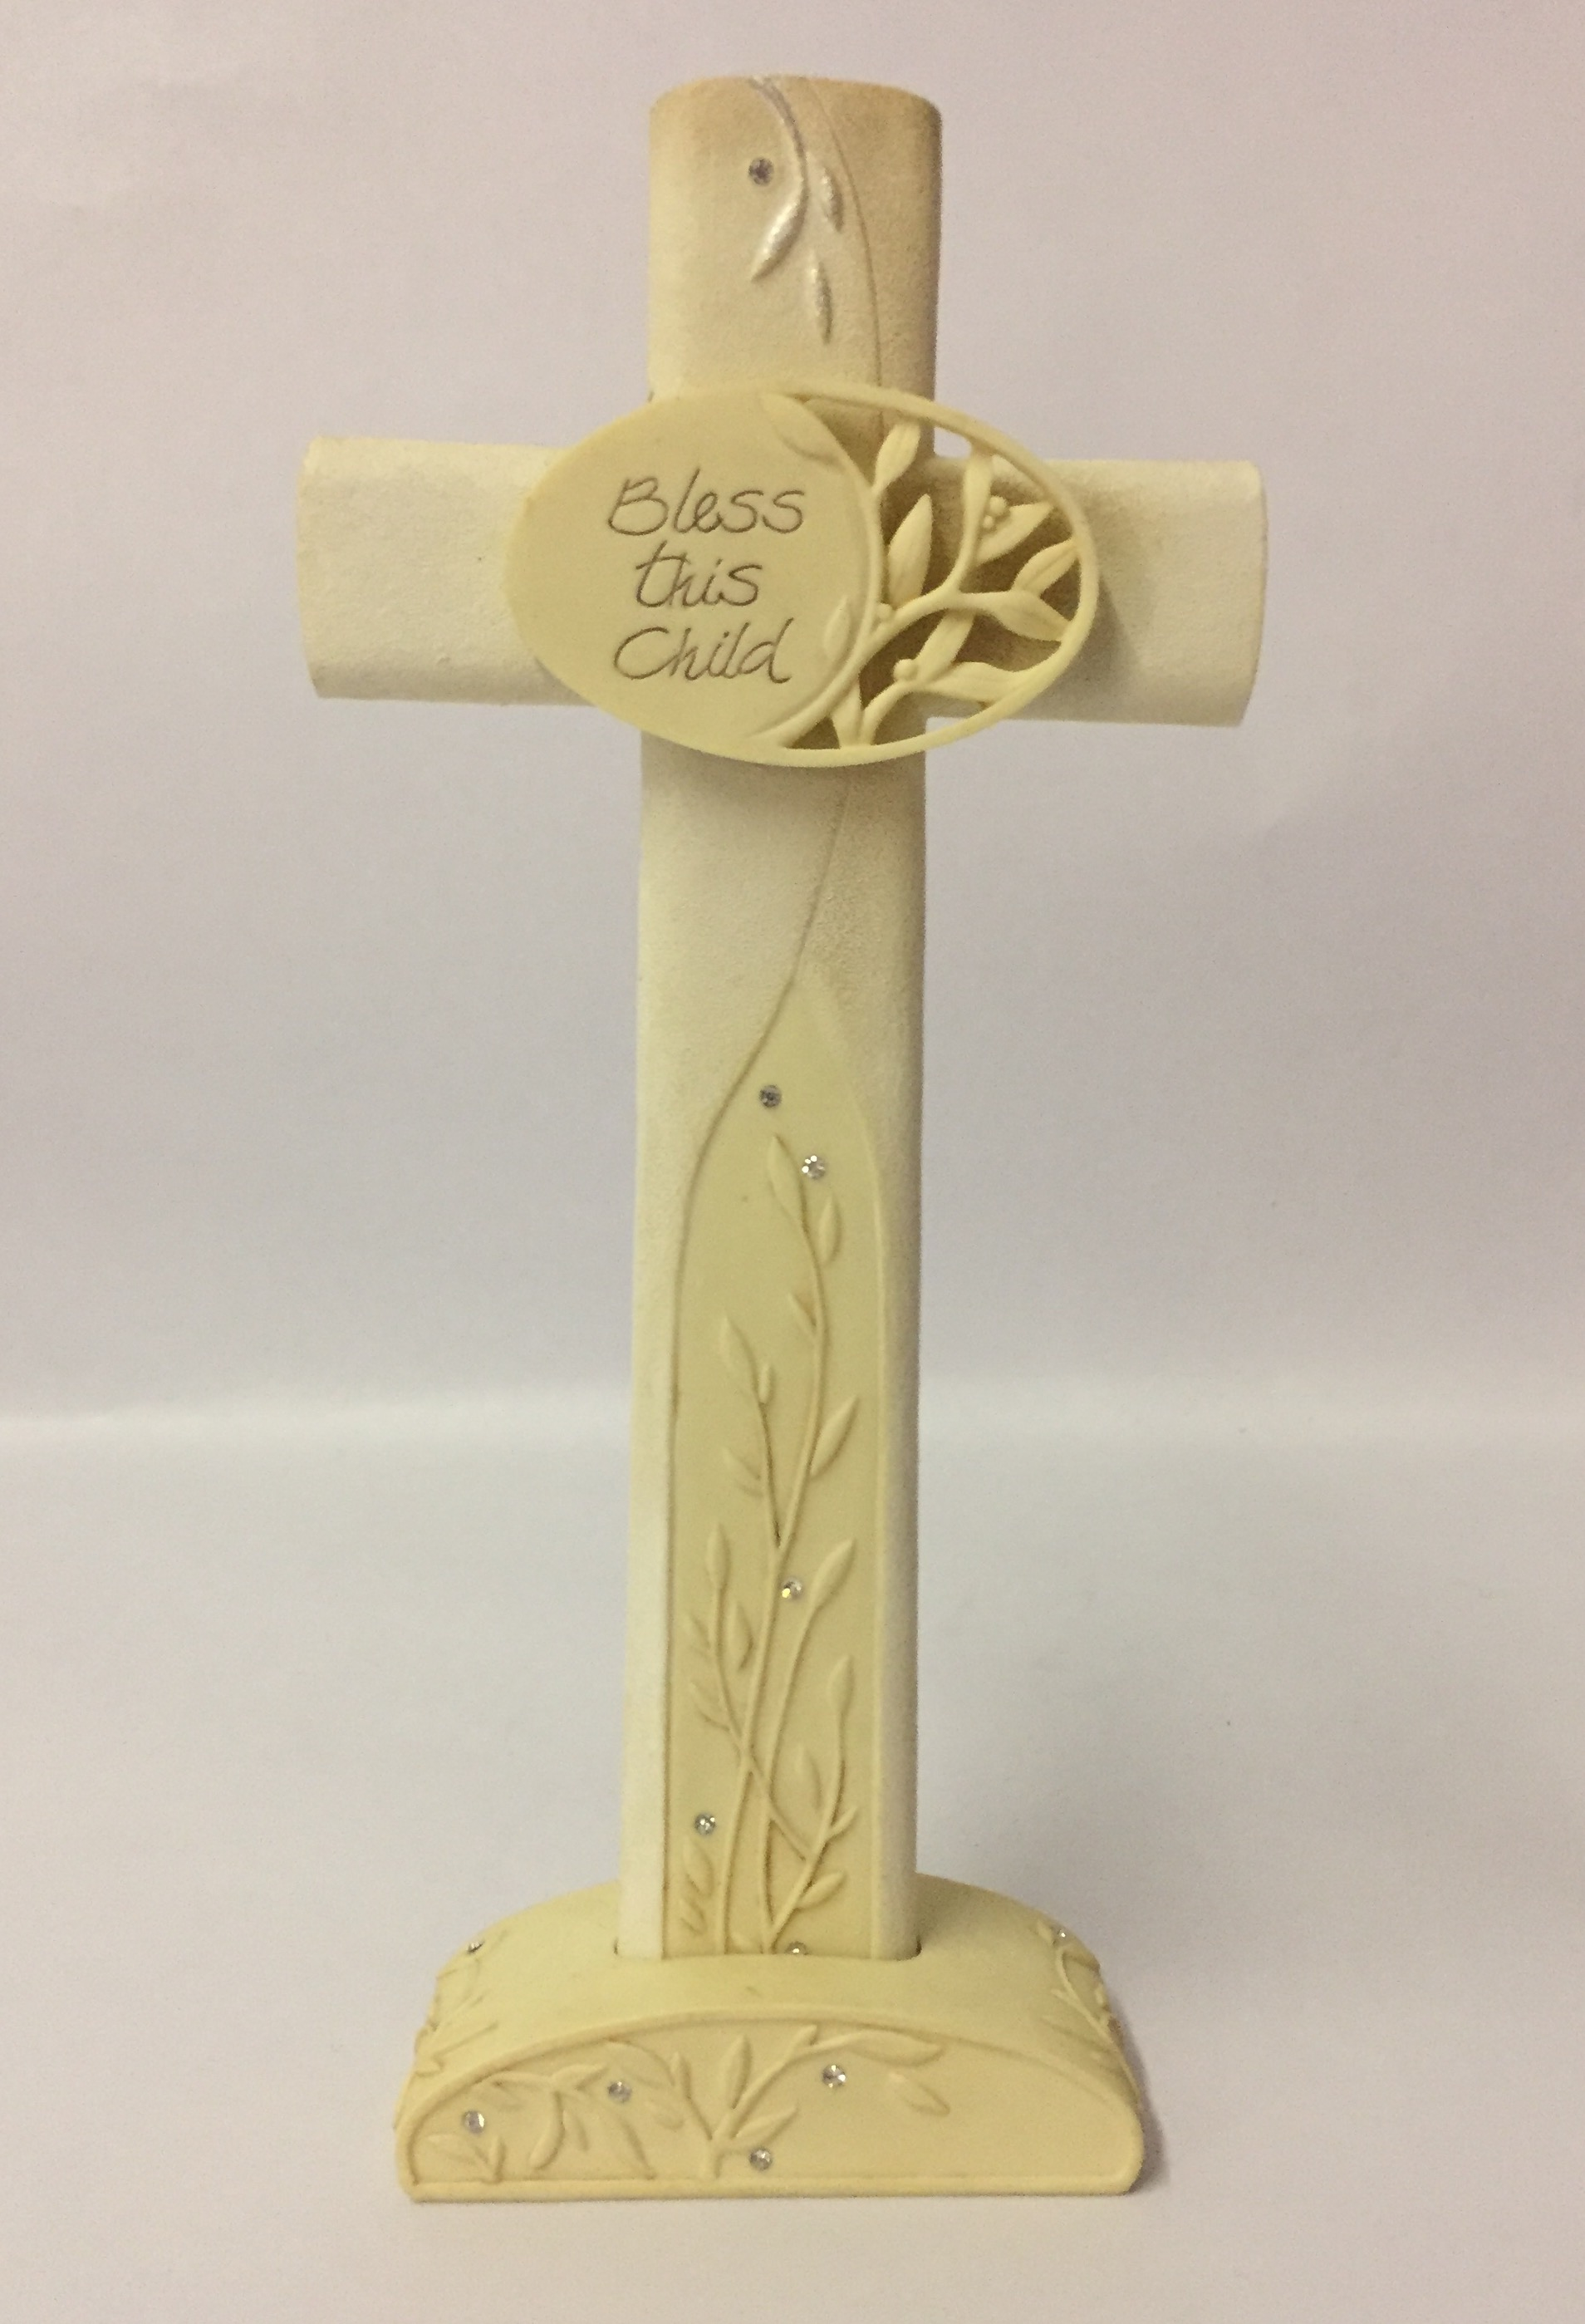 Enesco Foundations Bless this Child Cross 4015036